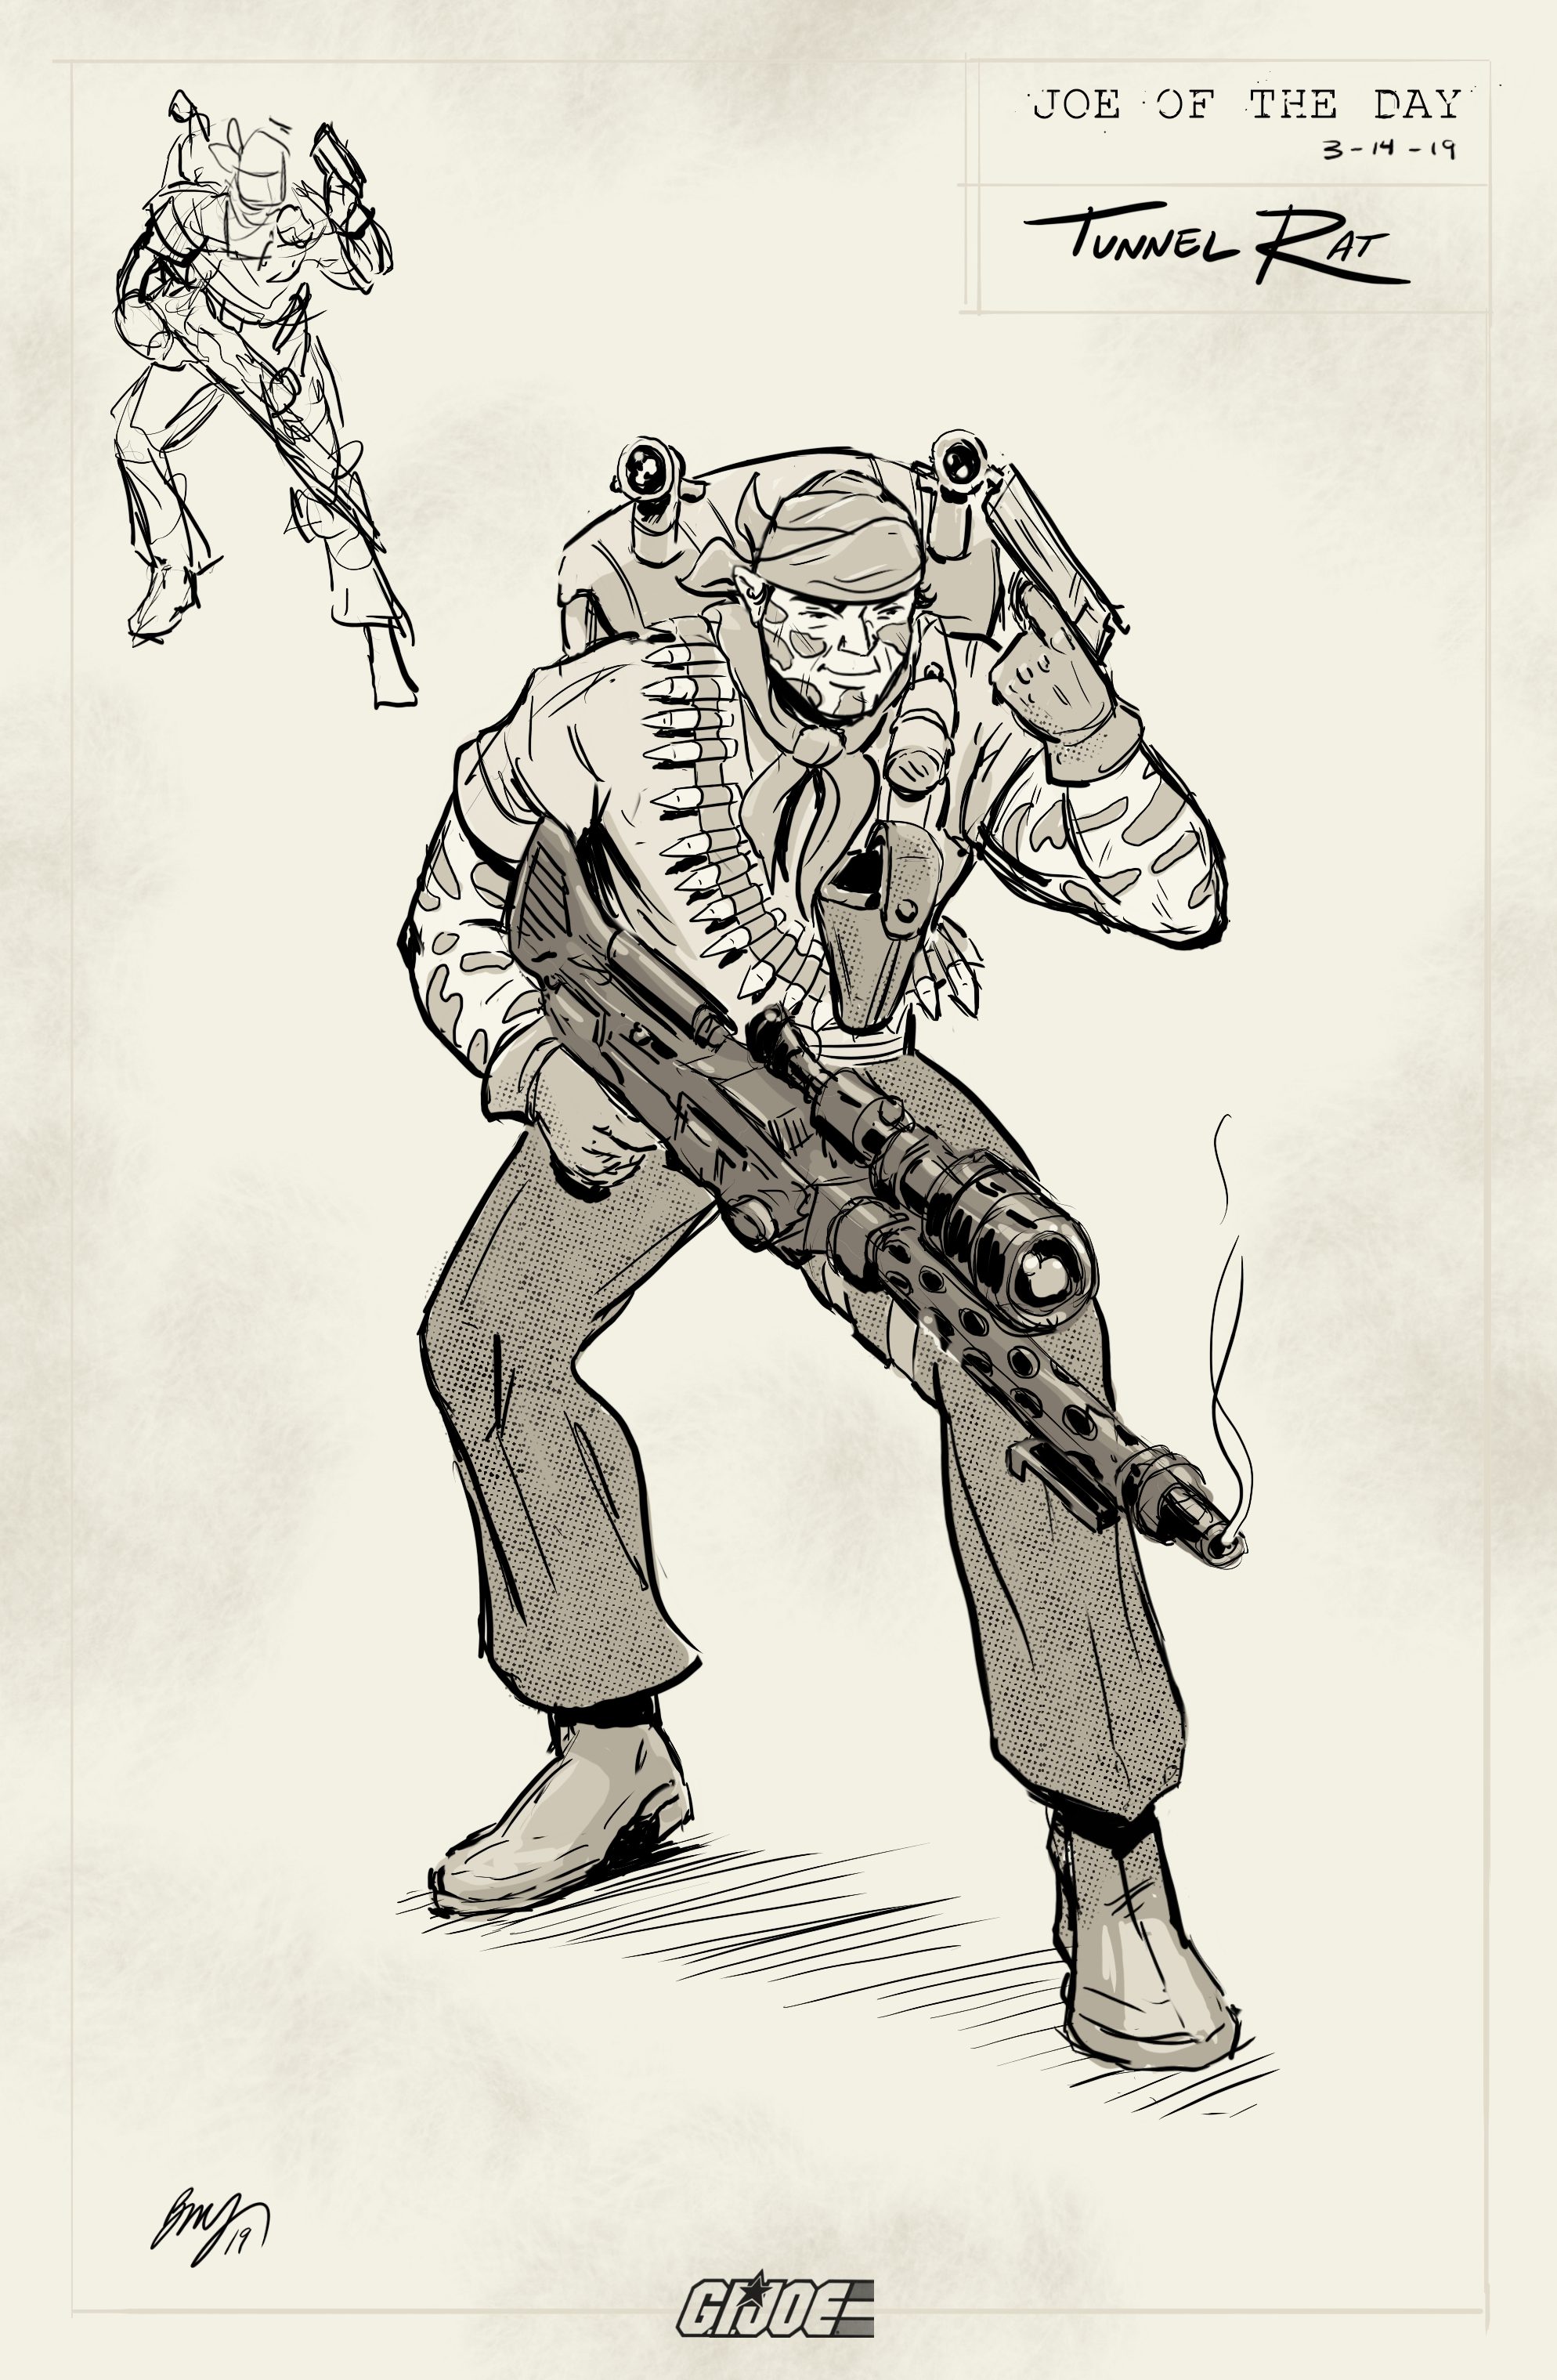 Tunnel Rat_3_14_19 .png